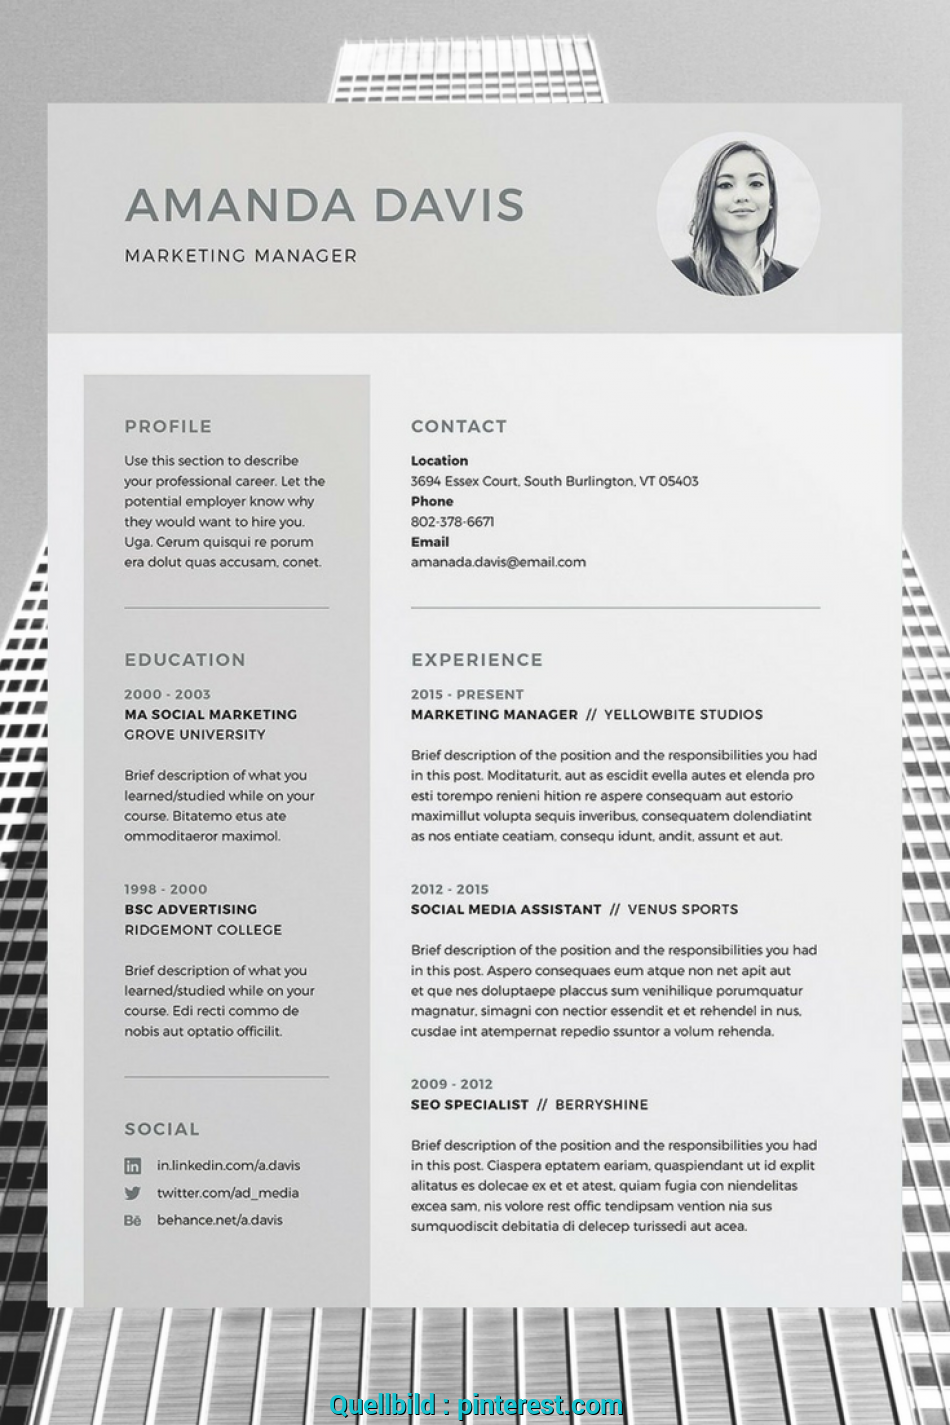 Kostbar Amanda 3 Page Resume/CV Template, Word, Photoshop ...